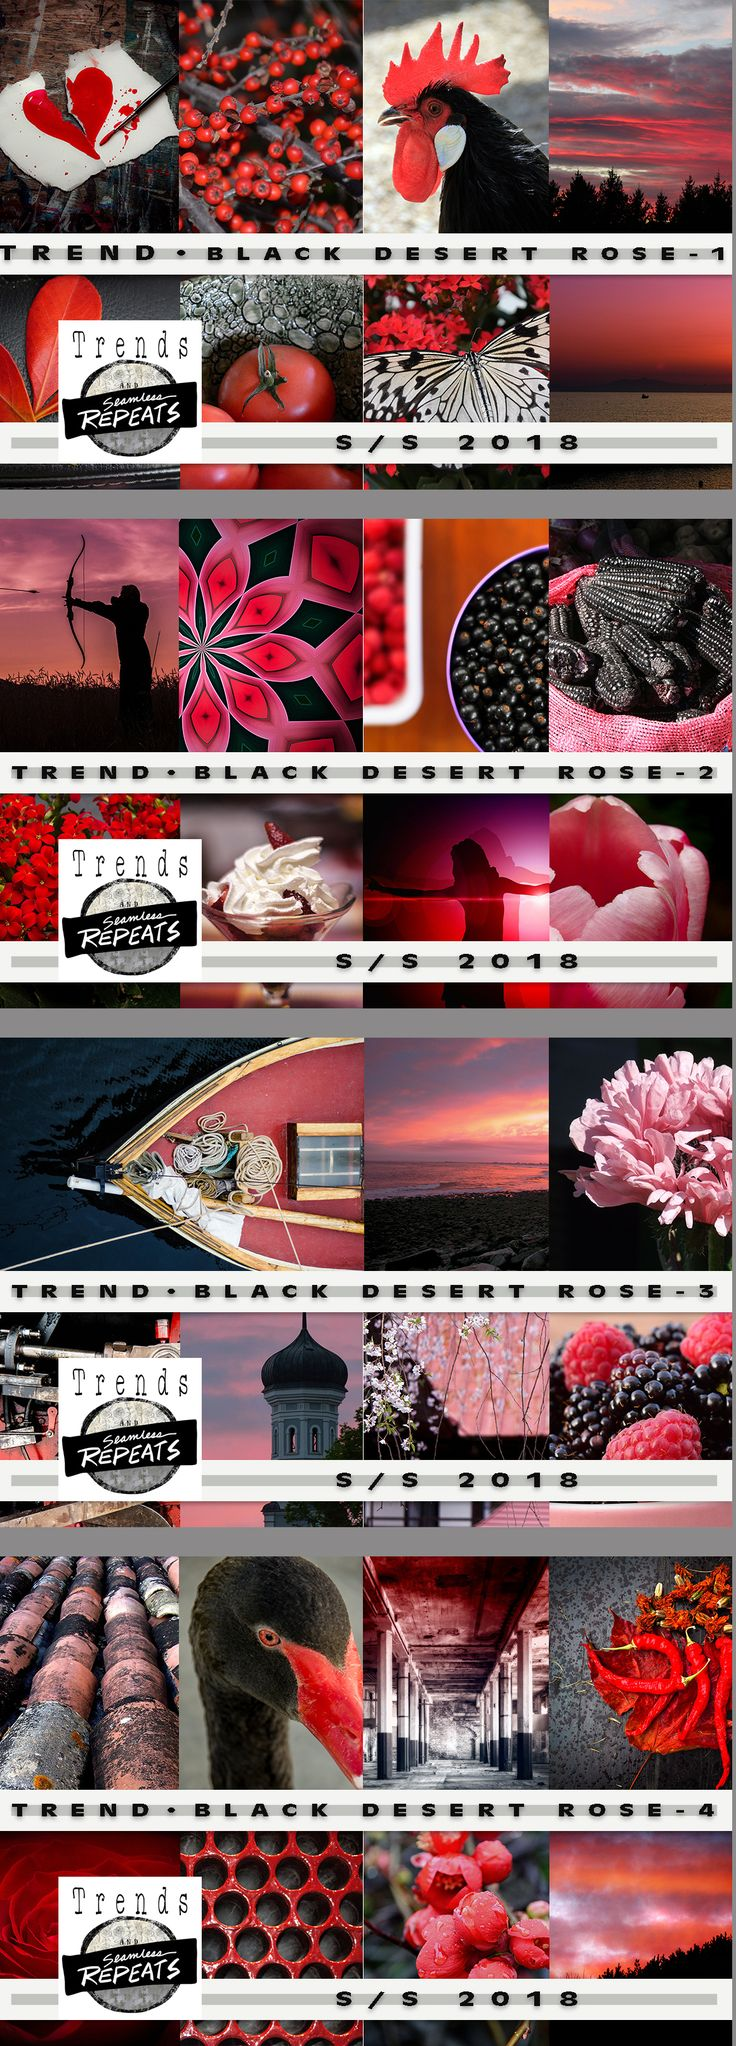 TREND - Black Desert Rose Everything you need to create your own trend board, mood board or other presentation or product.      52 - Creative Commons CC0 Images - average size approximately 1200px x 1900px     4 - Pantone Color Palettes (CMYK - Coated)     4 - CMYK (Pantone Color Bridge) .aco files for each color palette